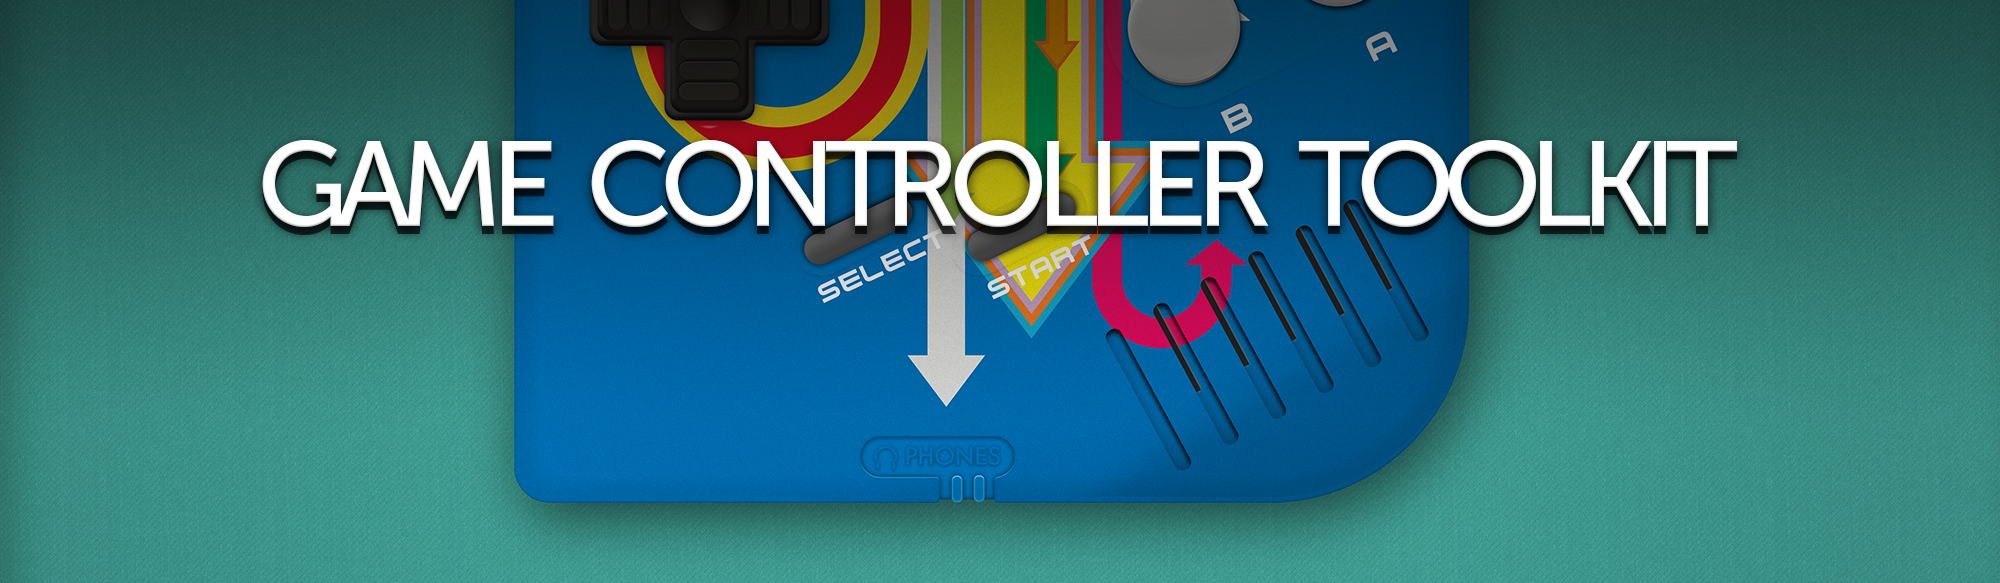 Game Controller Toolkit